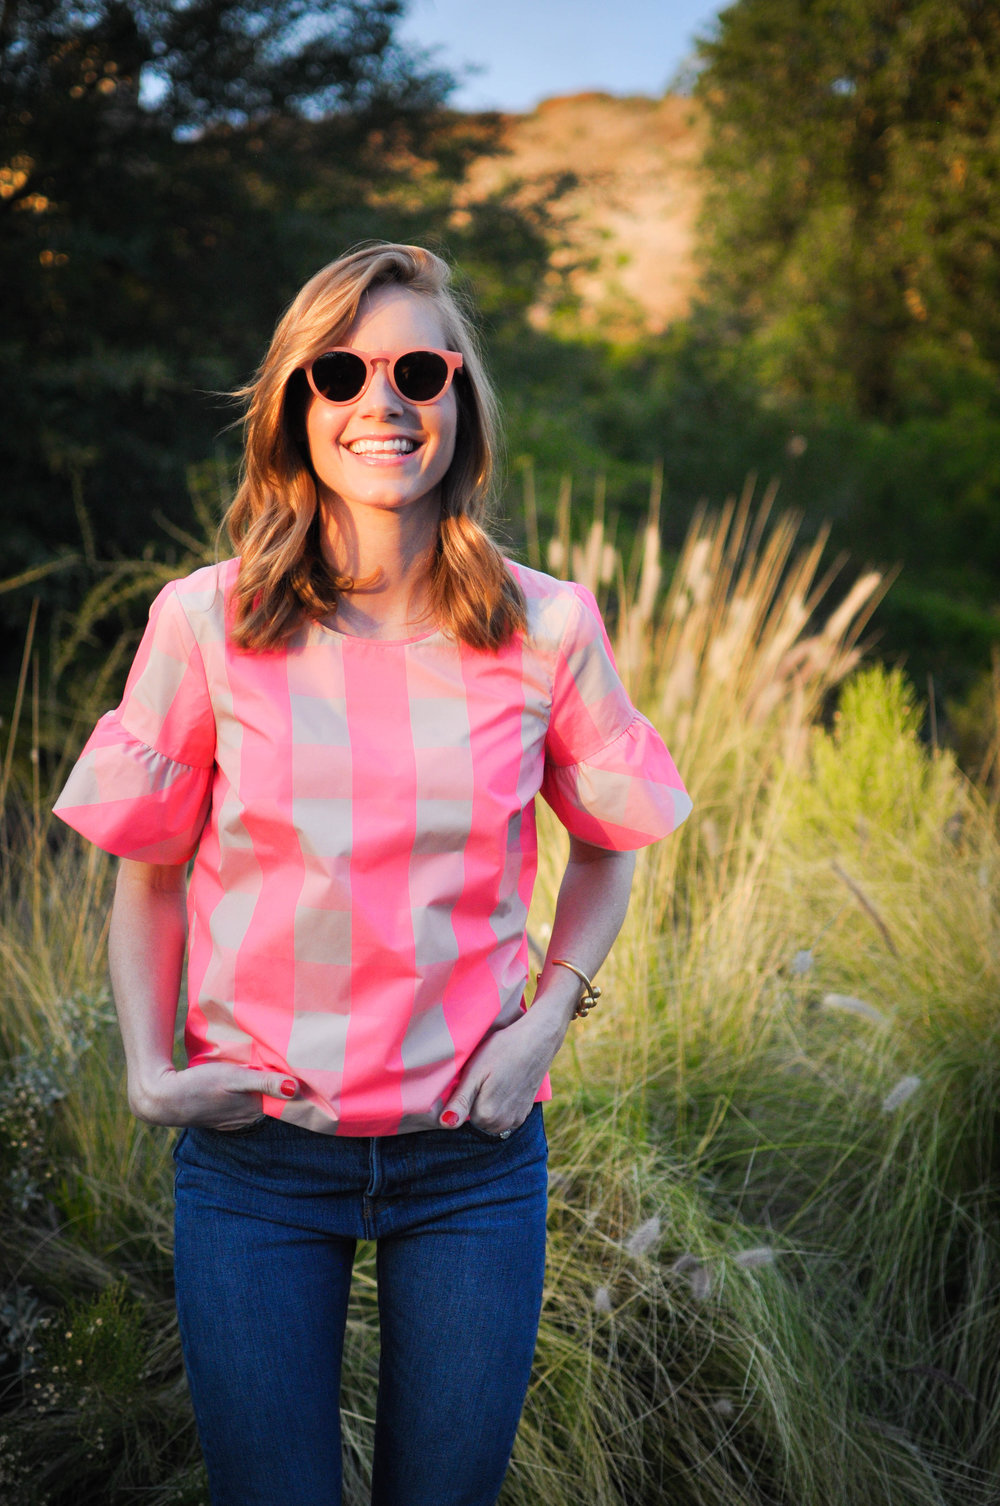 Woman in pink top and sunglasses smiling